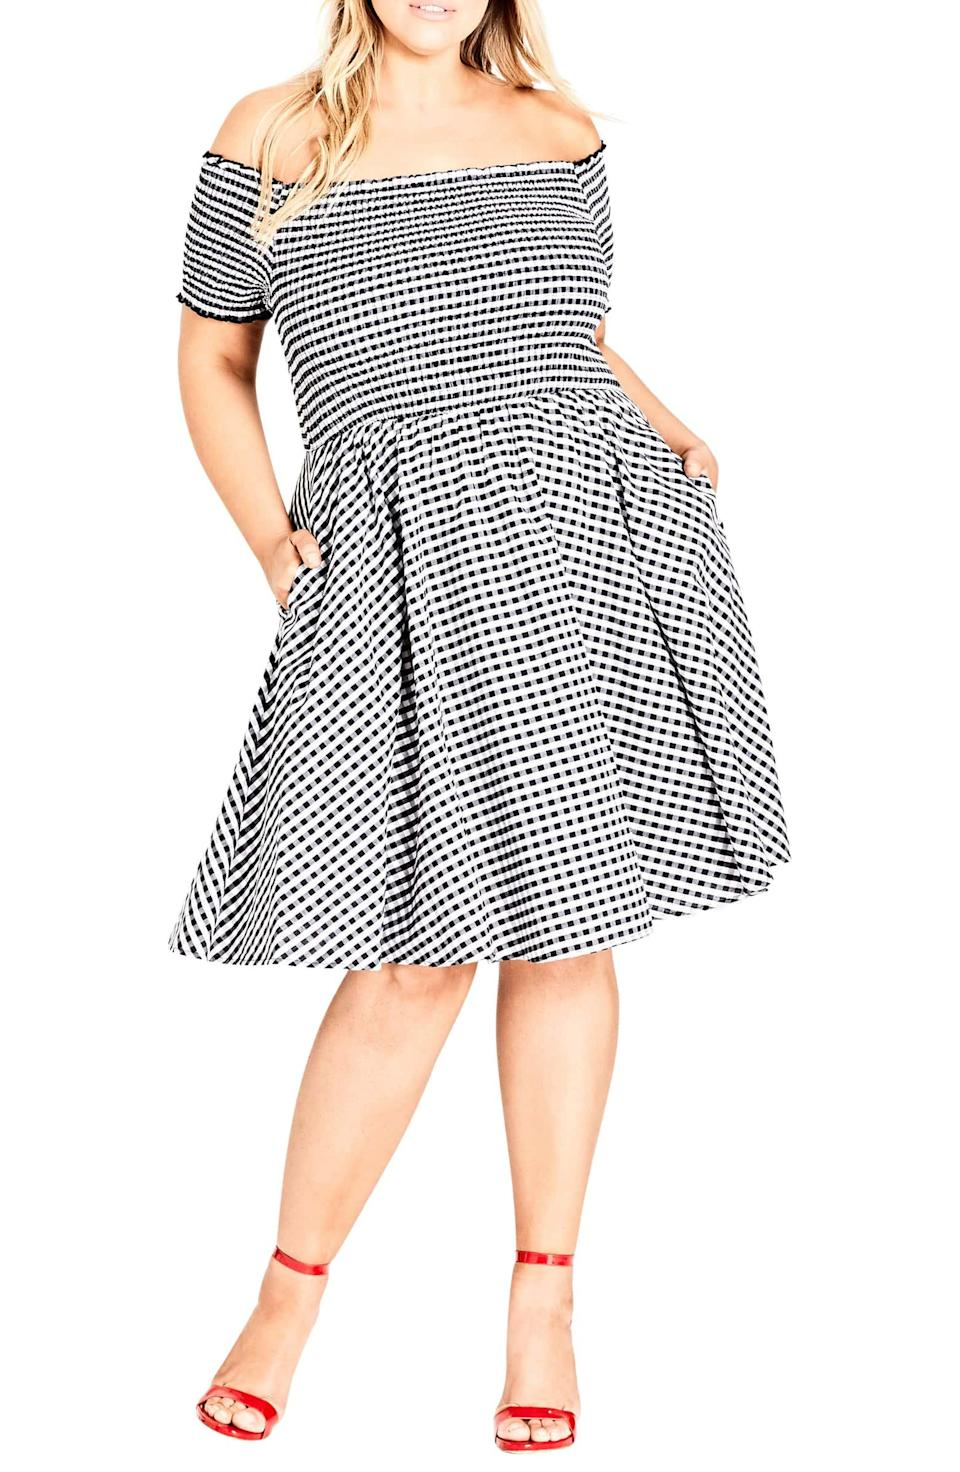 City Chic Gingham Off the Shoulder Fit & Flare Dress. (Photo: Nordstrom)